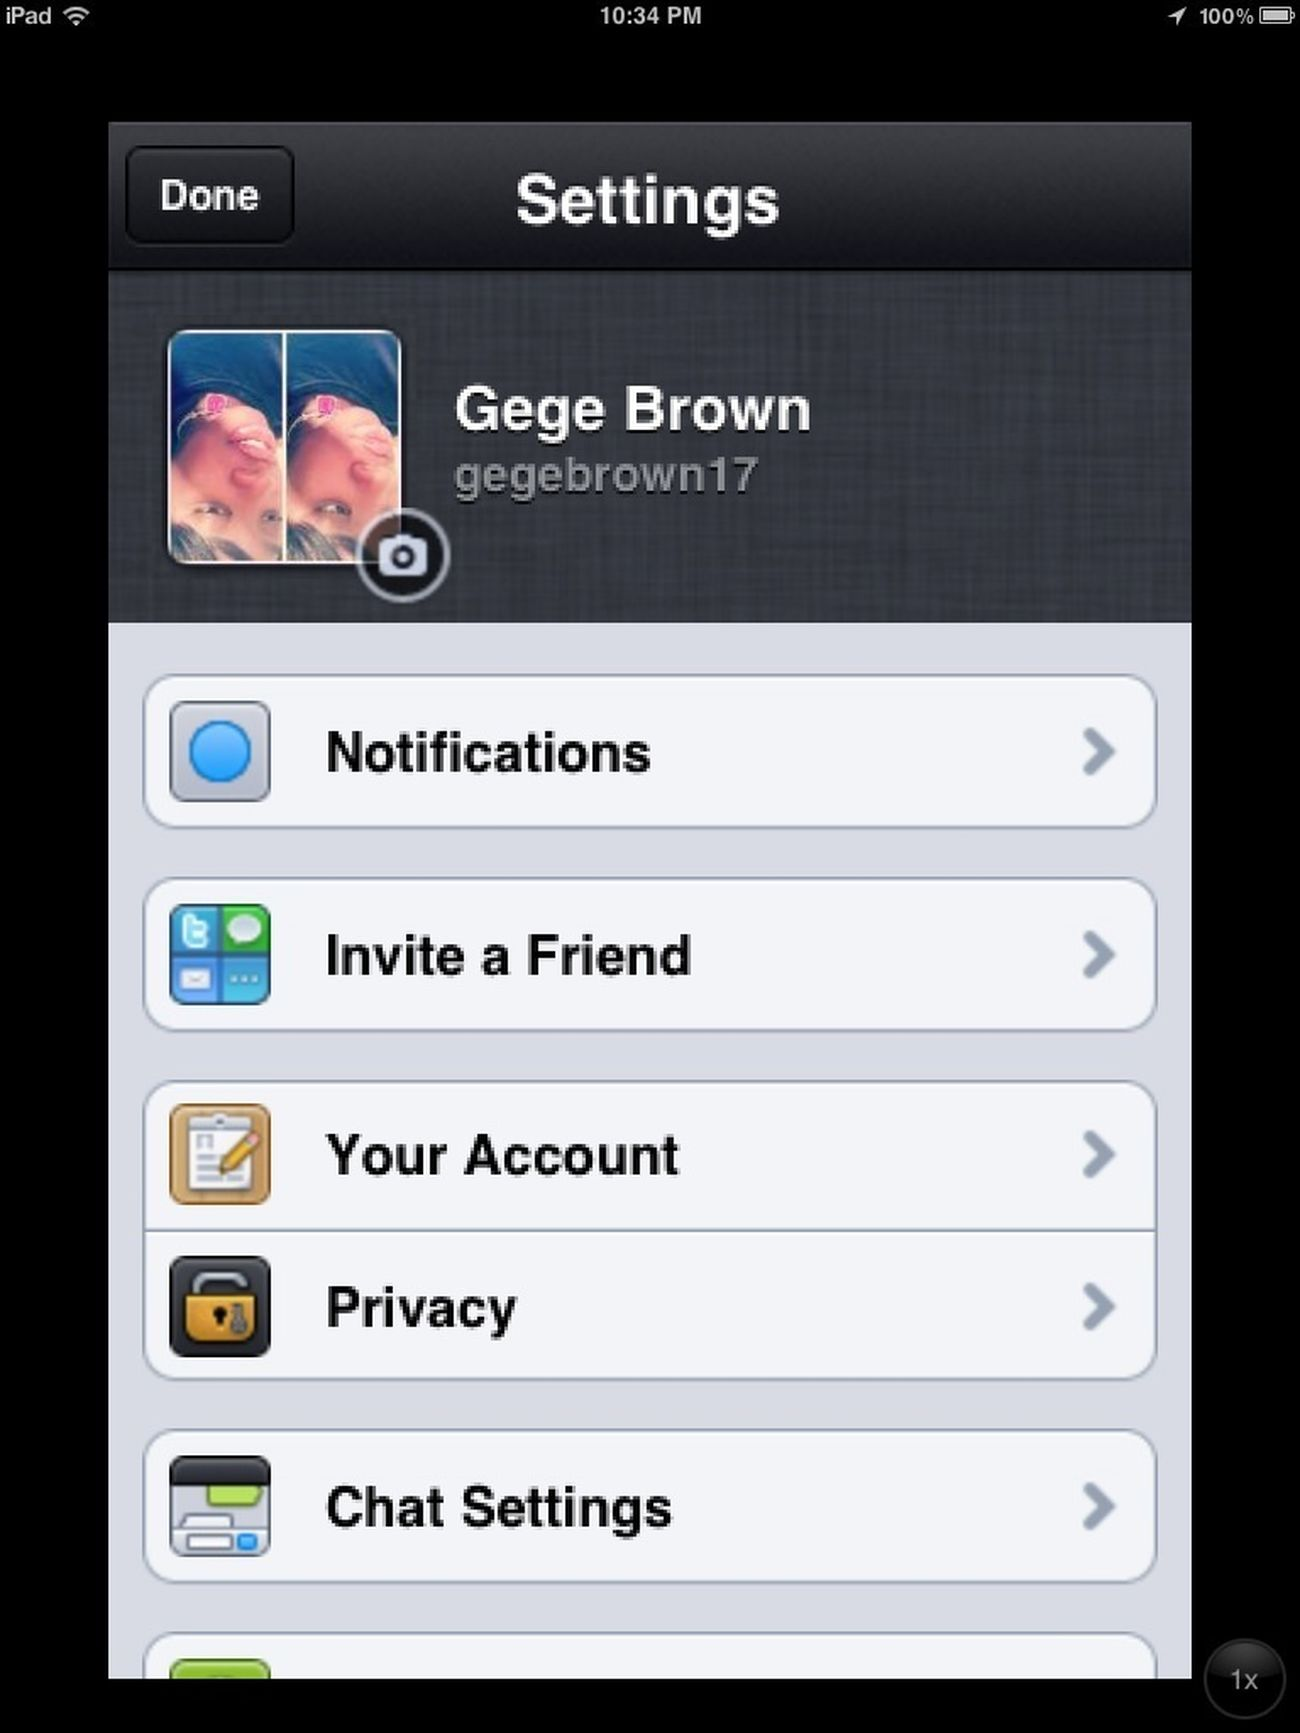 Kik gegebrown17